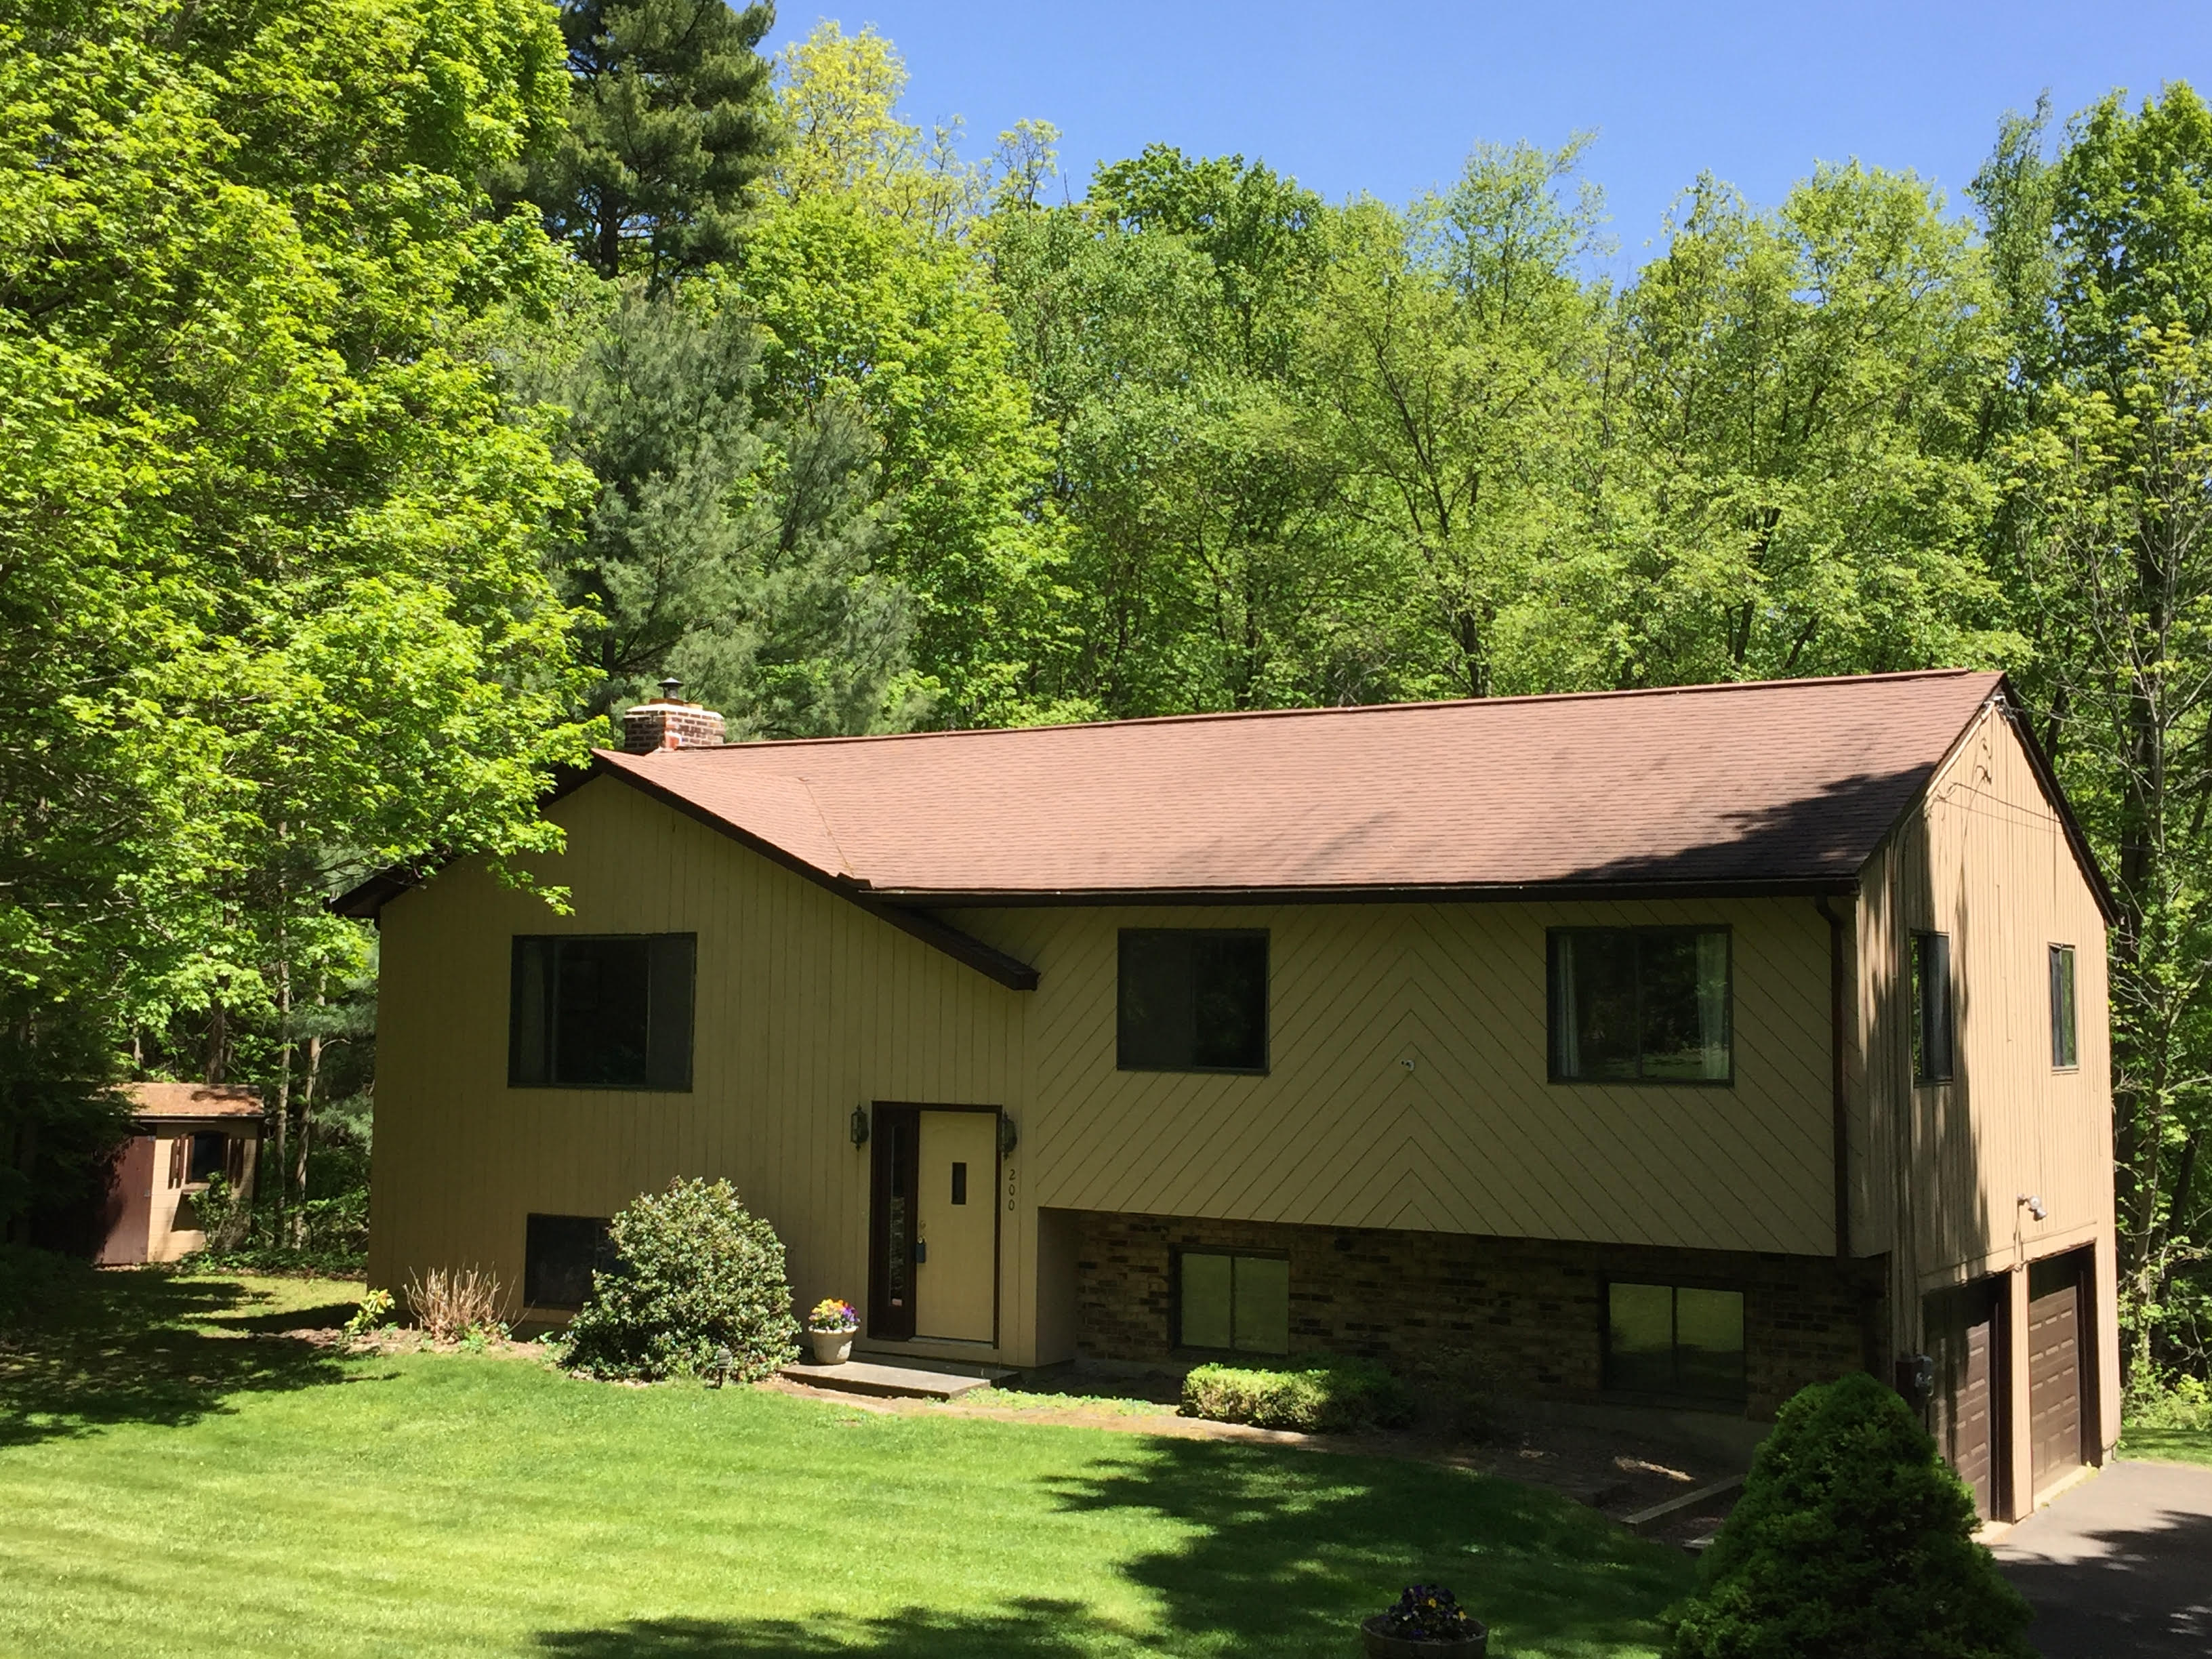 Single Family Home for Sale at Four Bedroom Raised Ranch 200 Pine Hill Road New Fairfield, Connecticut, 06812 United States